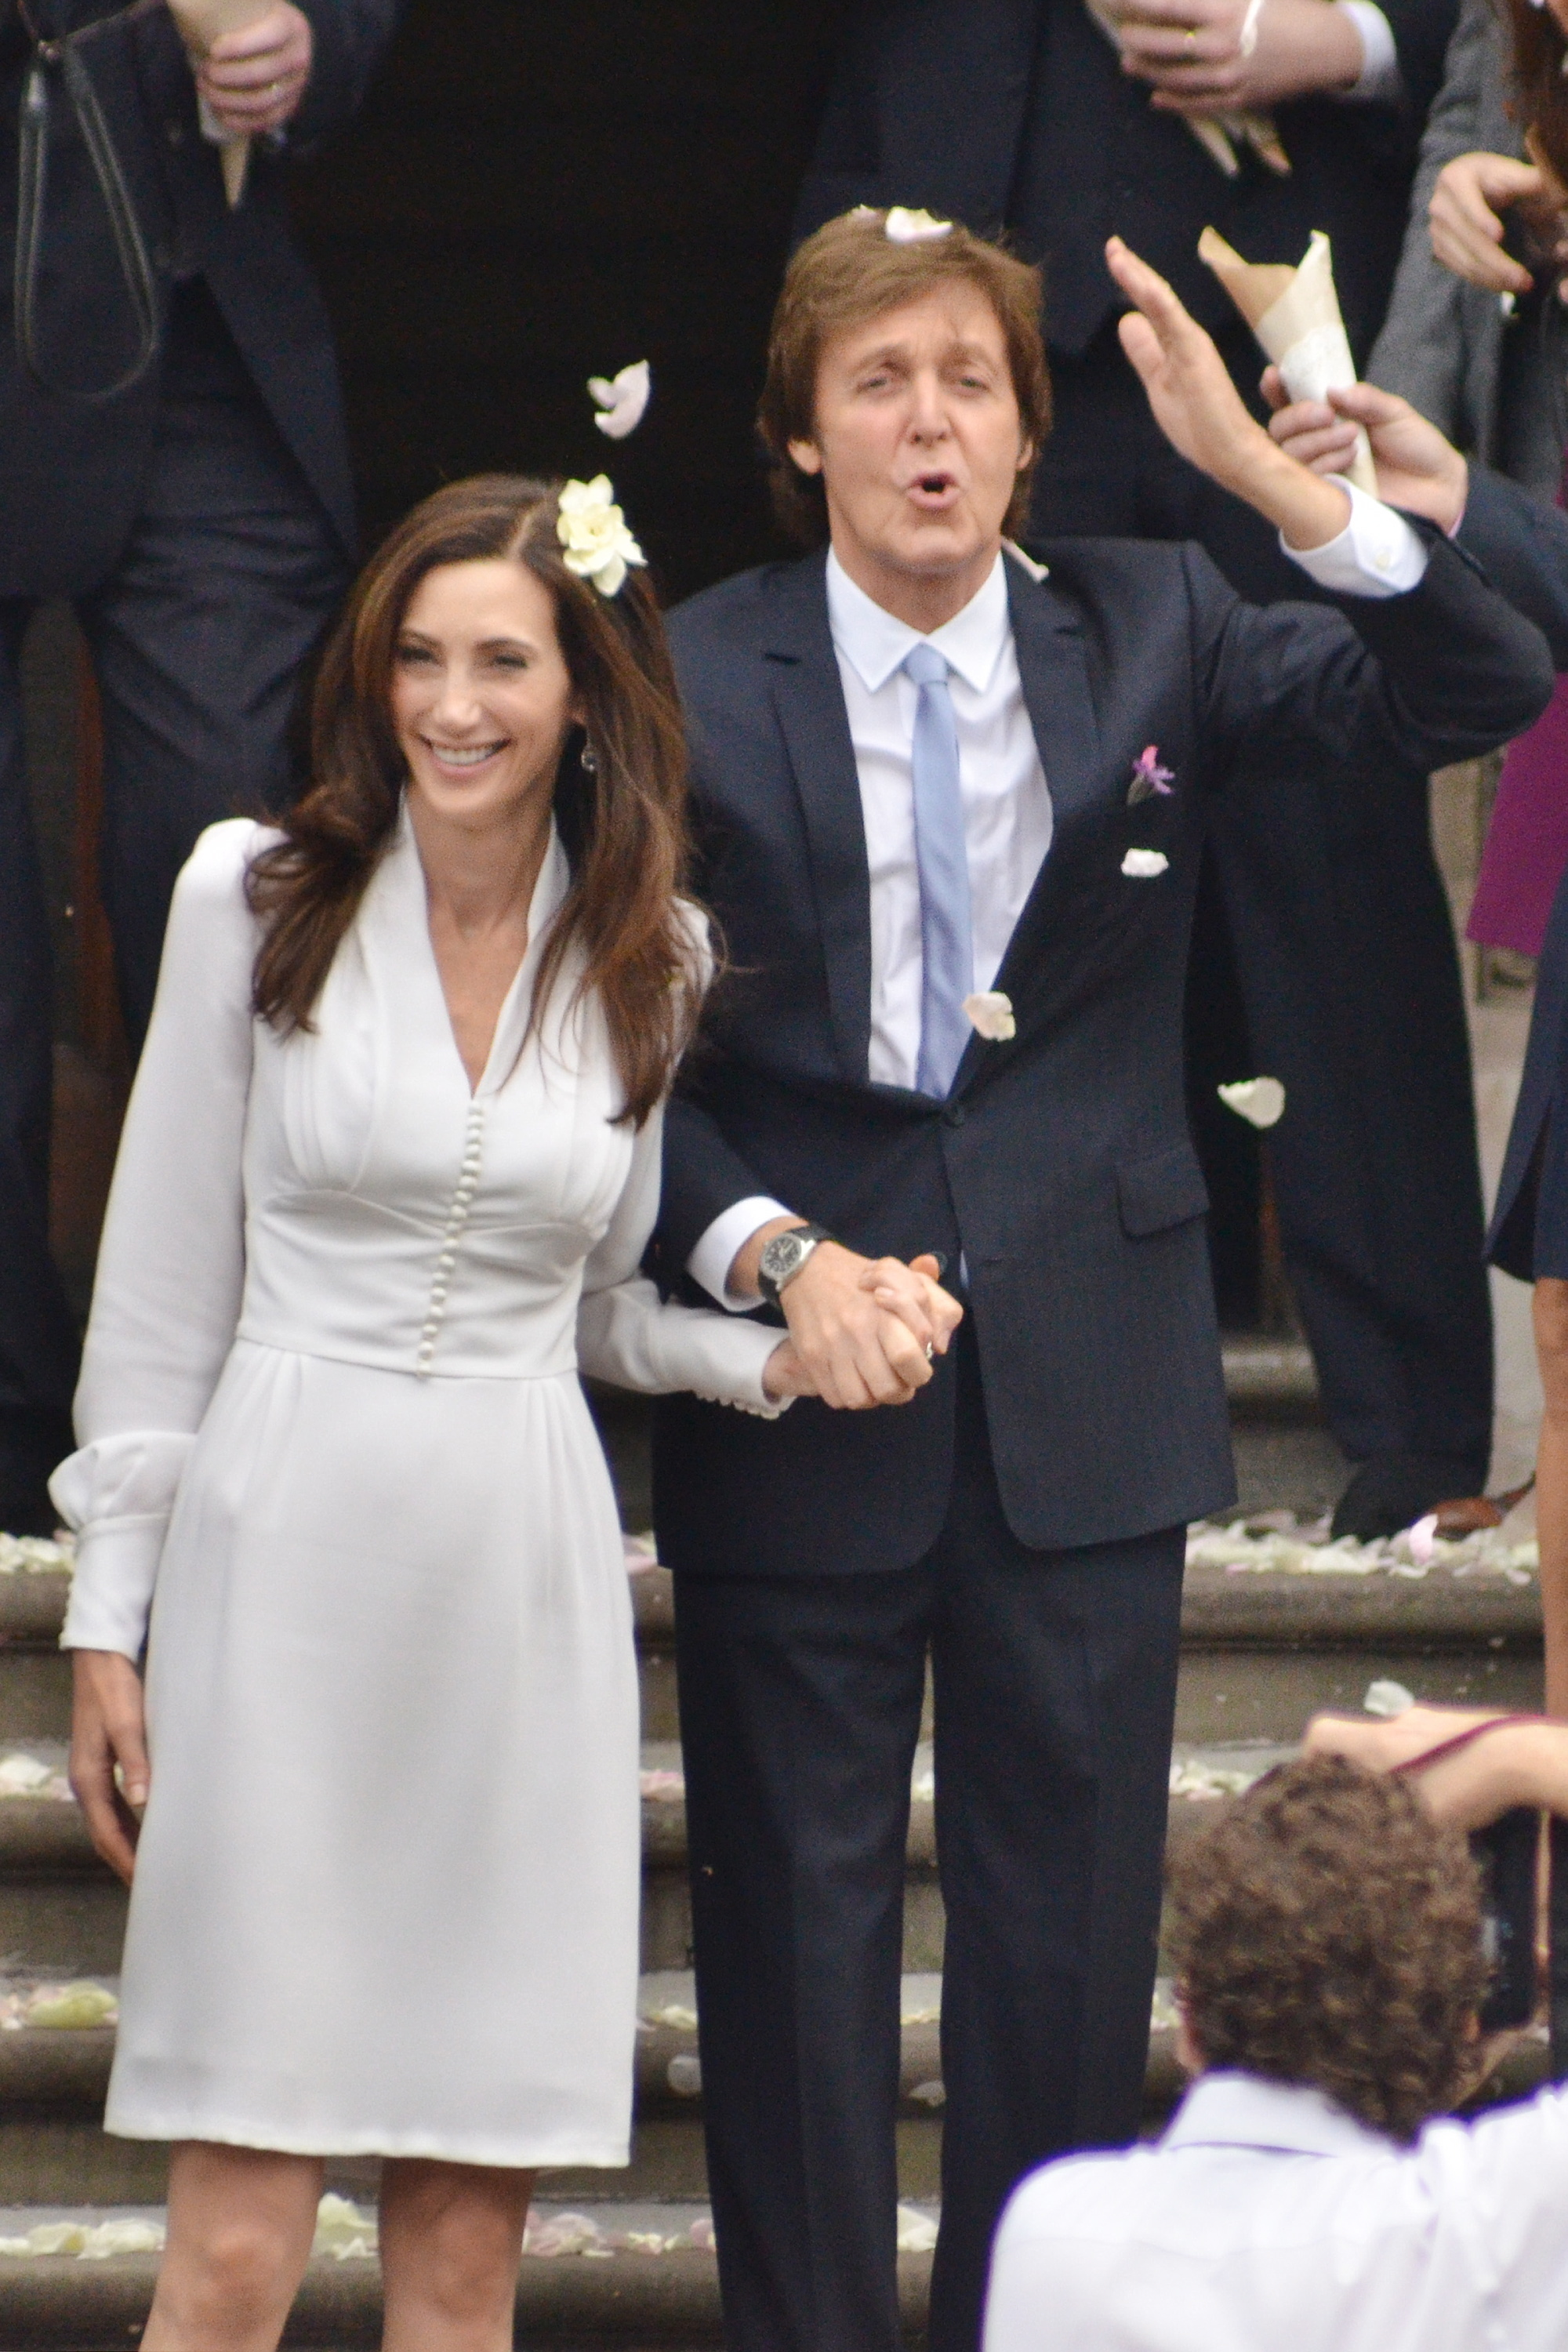 Paul McCartney married